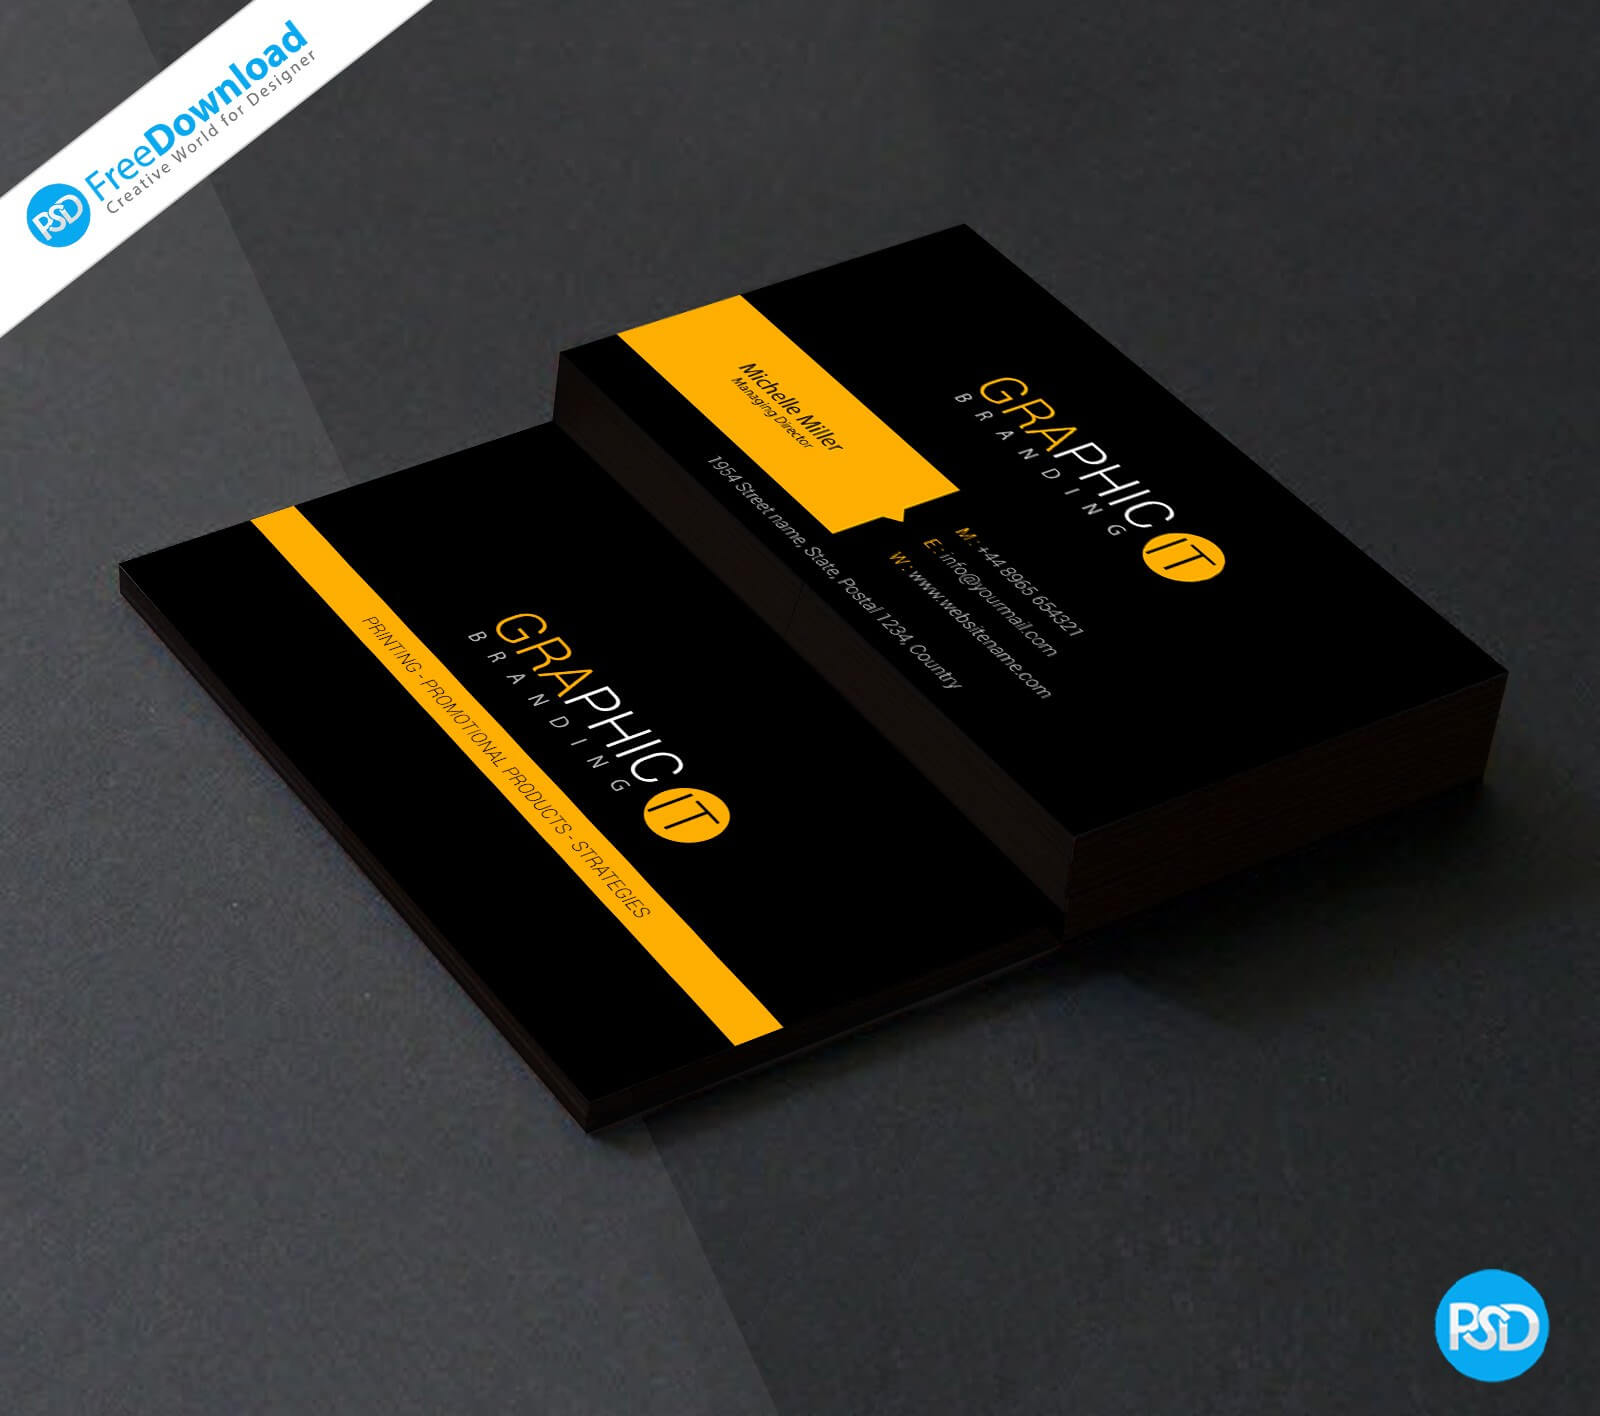 010 Blank Business Card Template Photoshop Free Download Intended For Photoshop Name Card Template